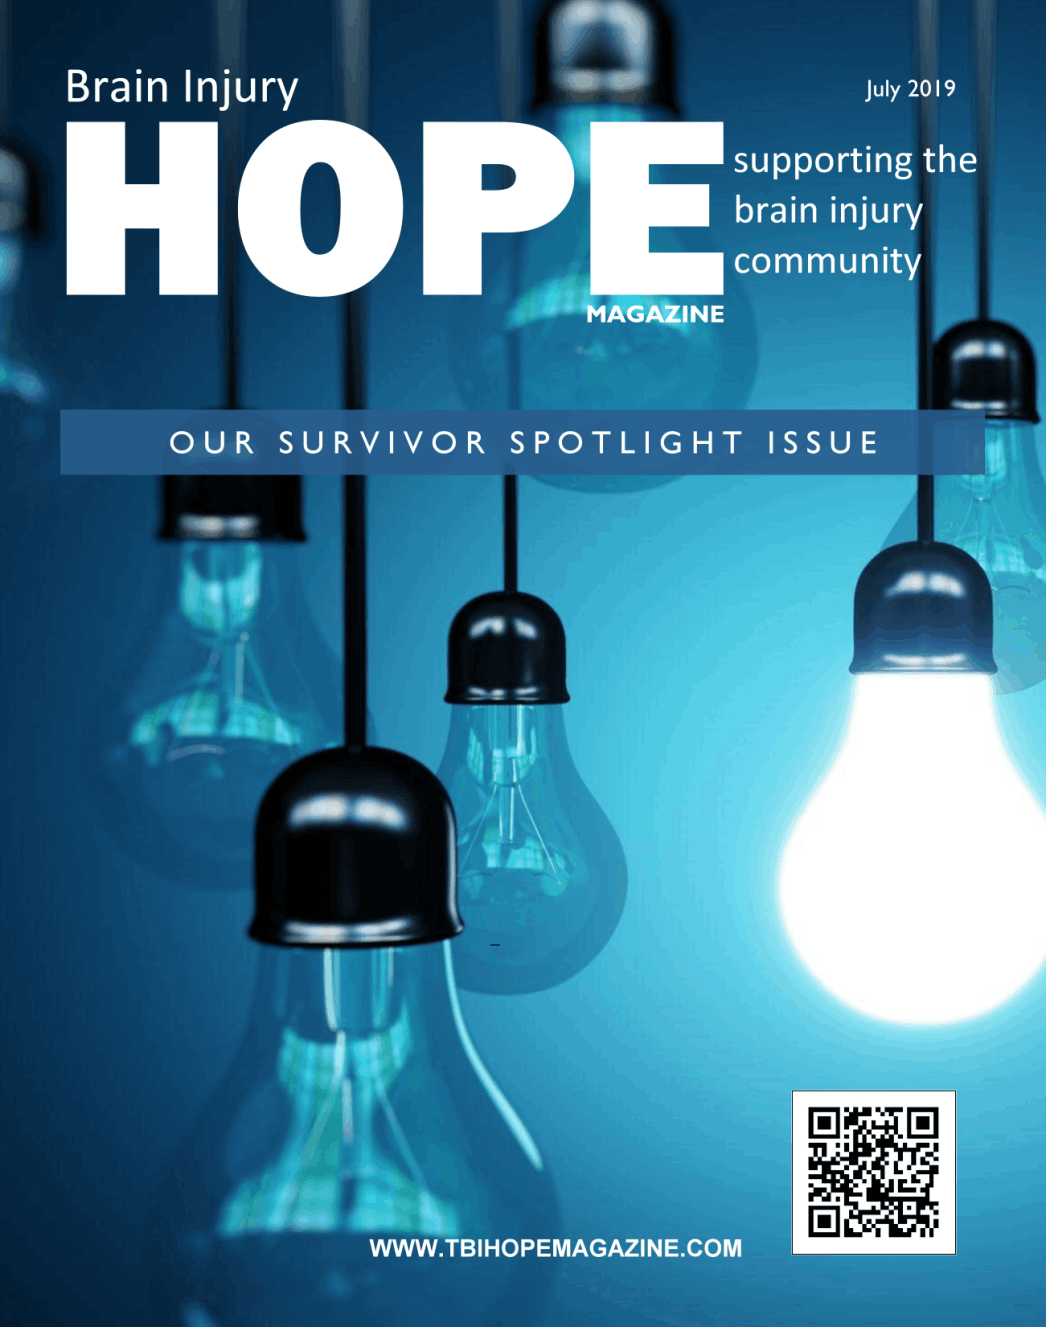 Hope after Brain Injury Magazine